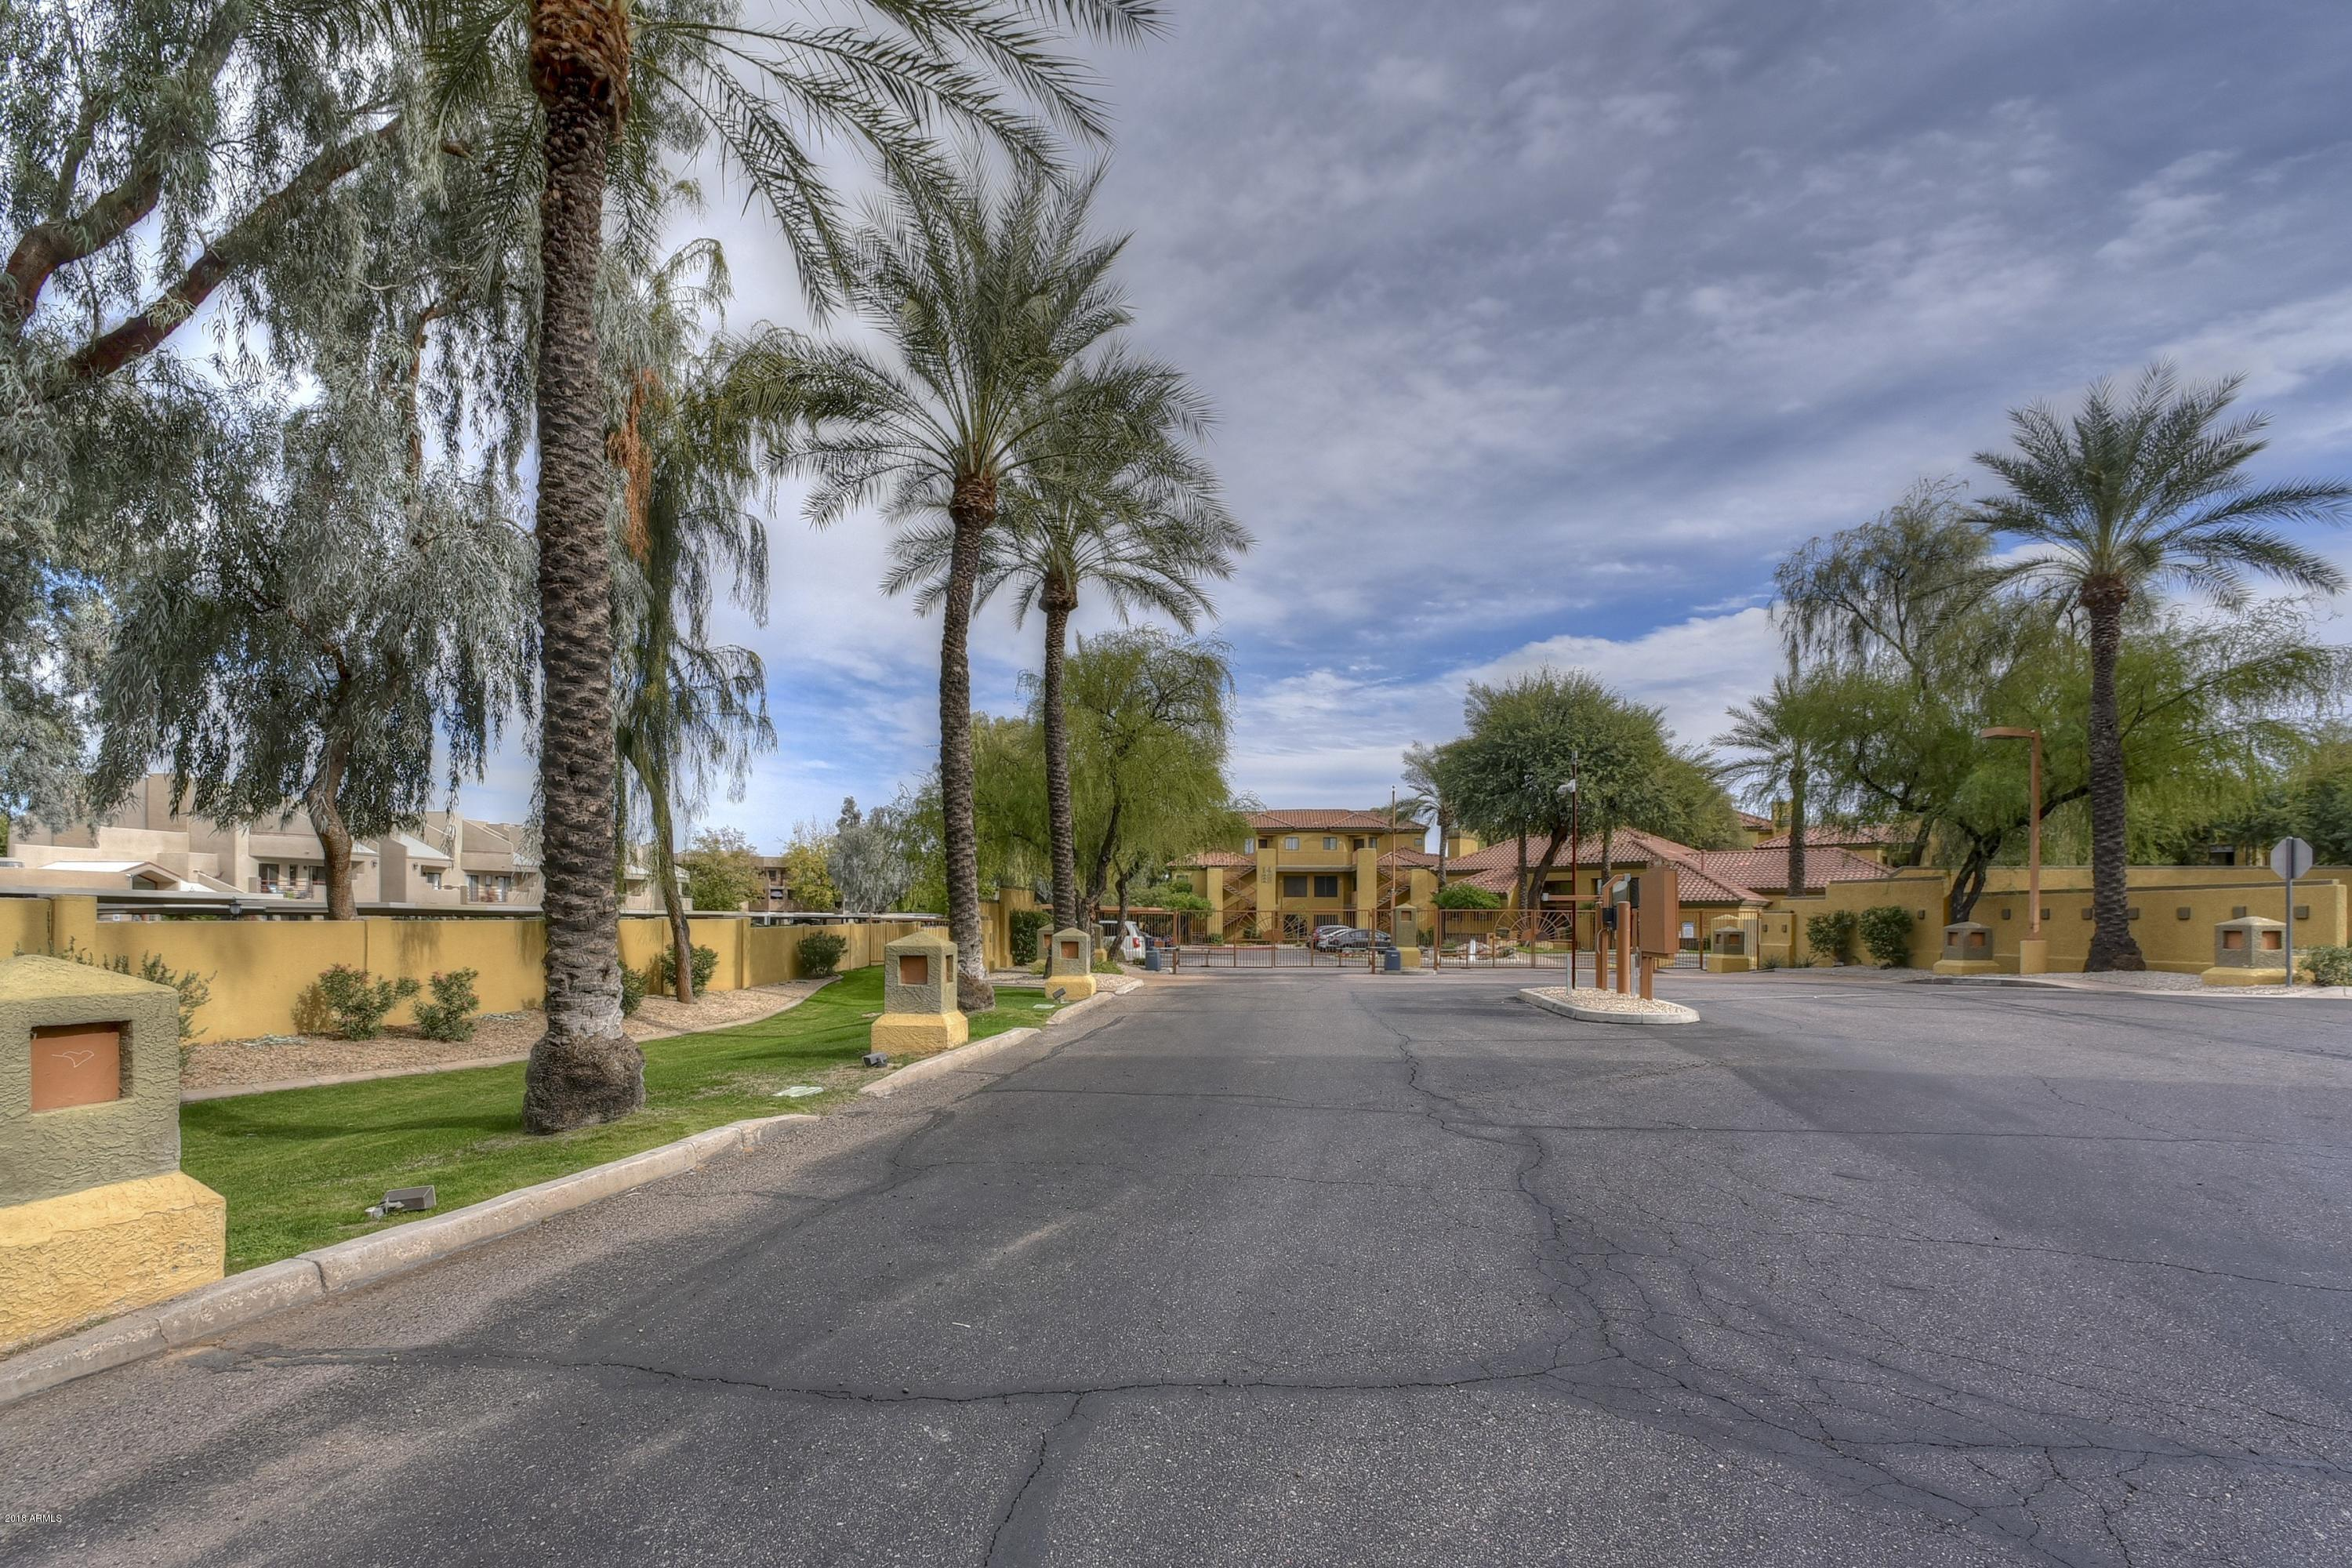 MLS 5855305 4925 E DESERT COVE Avenue Unit 225 Building 8, Scottsdale, AZ 85254 Scottsdale AZ Scottsdale Airpark Area